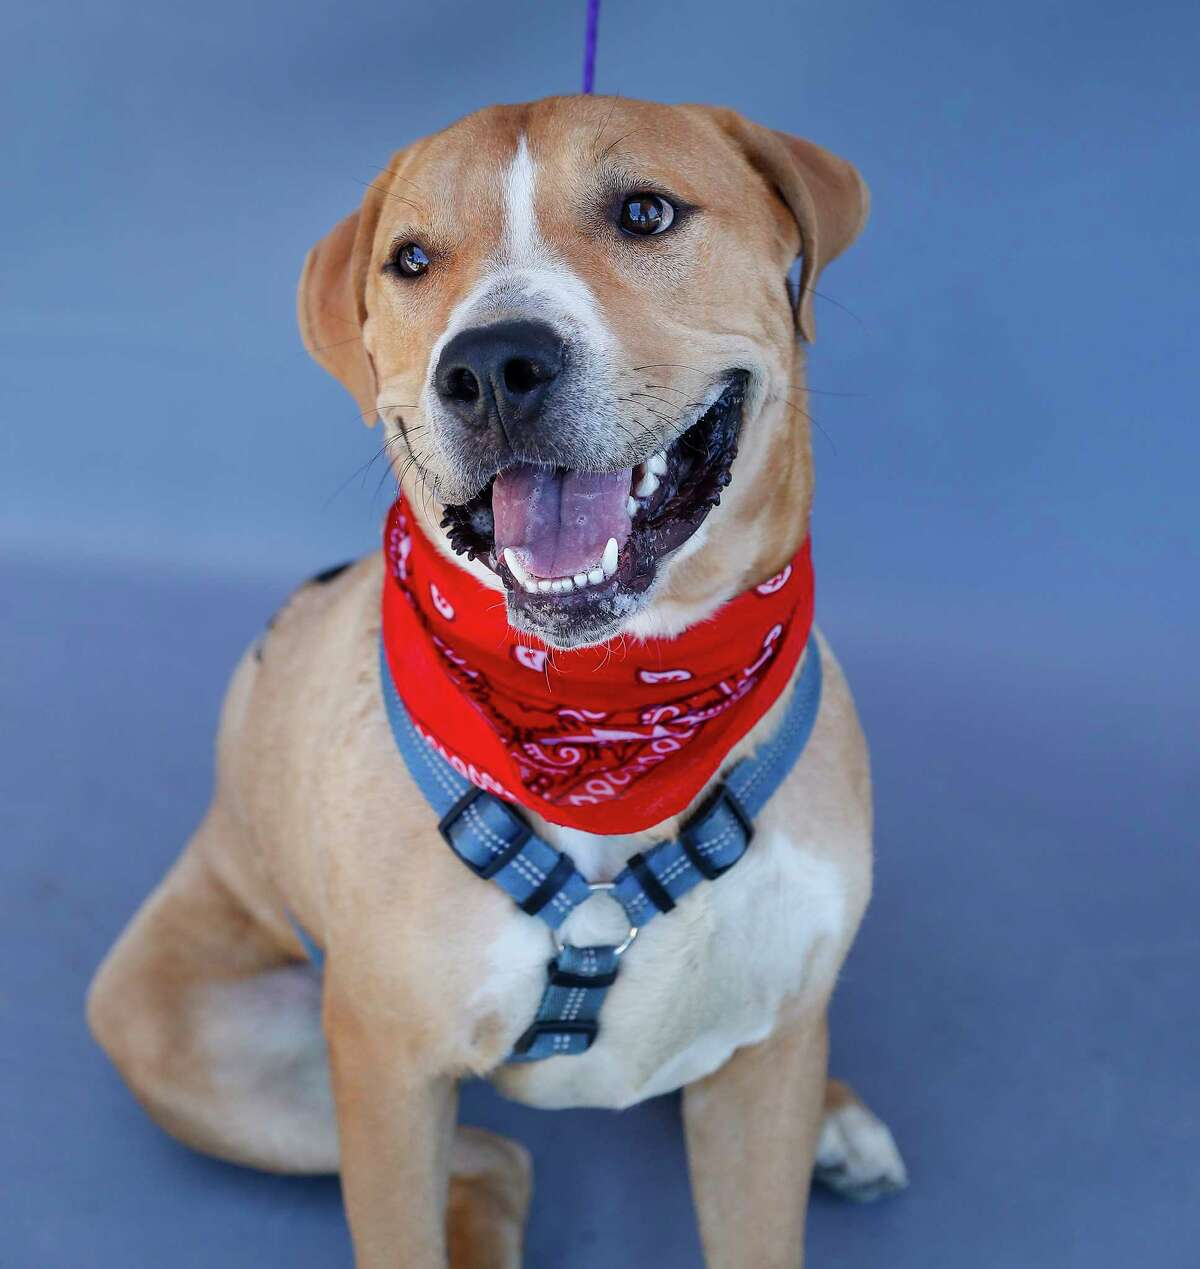 Cinnamon (A556207) is a 2-year-old, male, Labrador/Pit Bull mix who was turned in as a stray on June 9. The 73-pound boy knows his manners and can sit, speak and shake hands and enjoys treats as a reward. Cinnamon's heart is as big as his bark, and he loves the company of people.